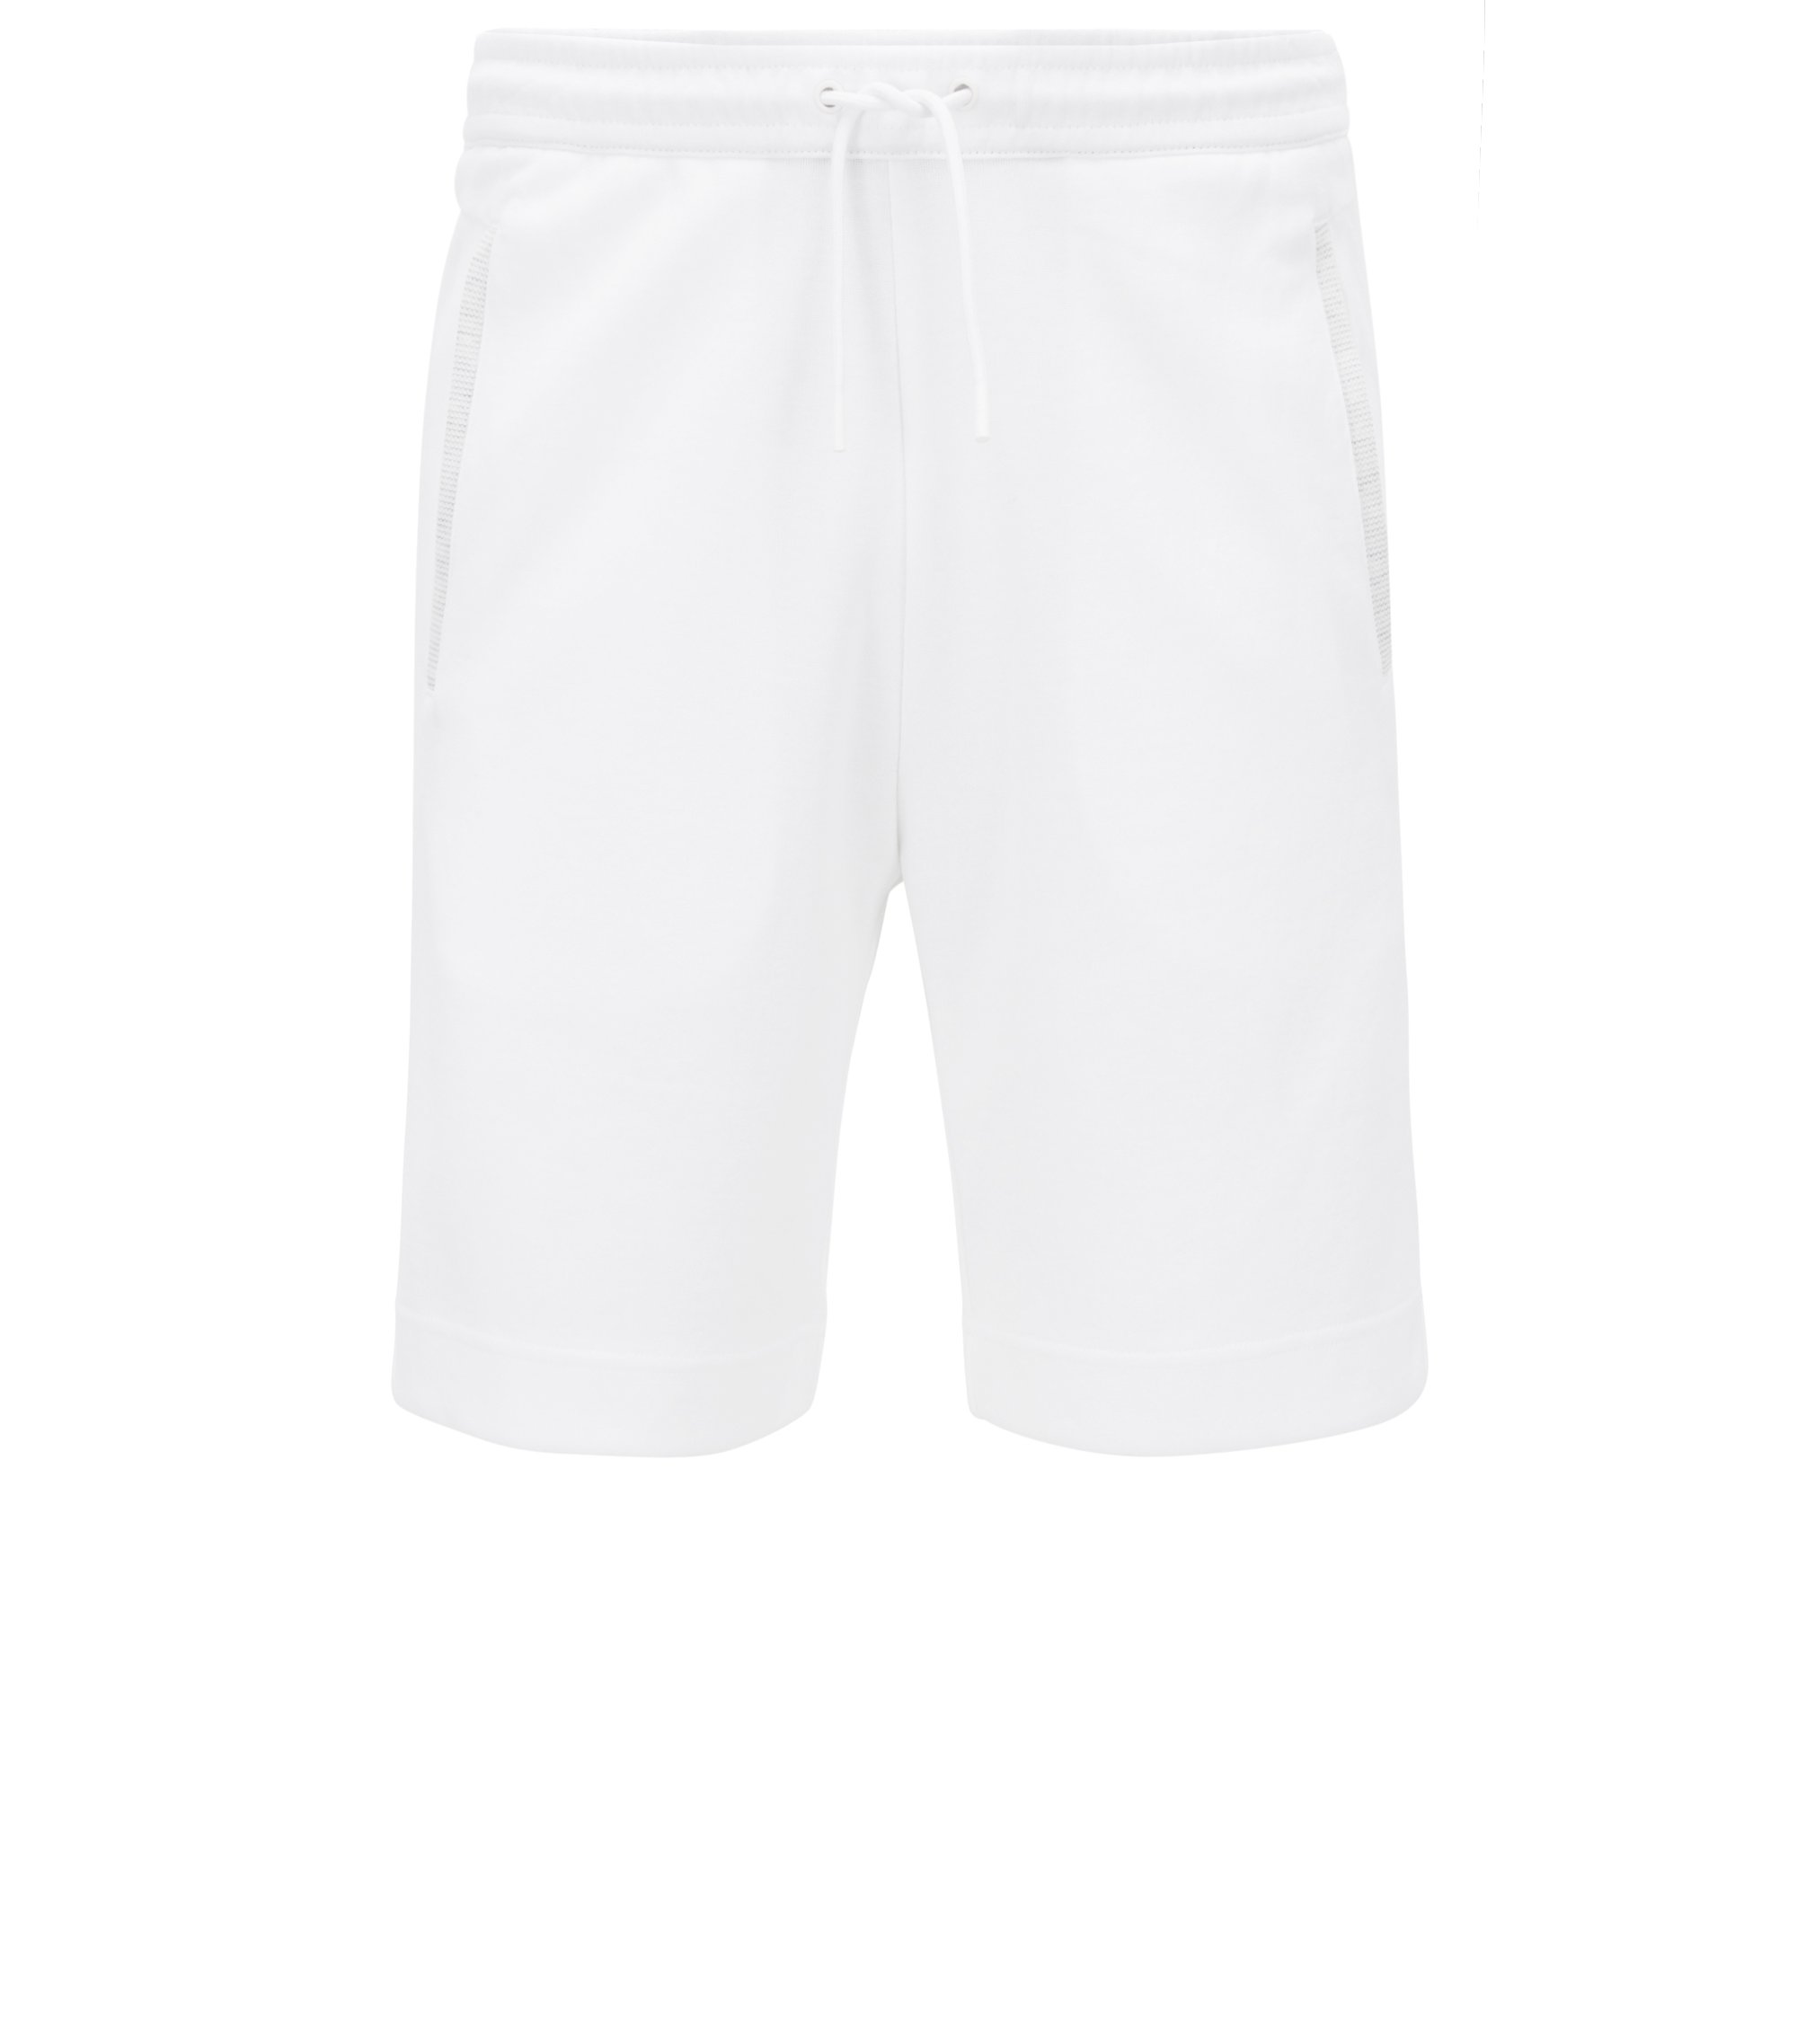 Jogging shorts in a cotton blend, White